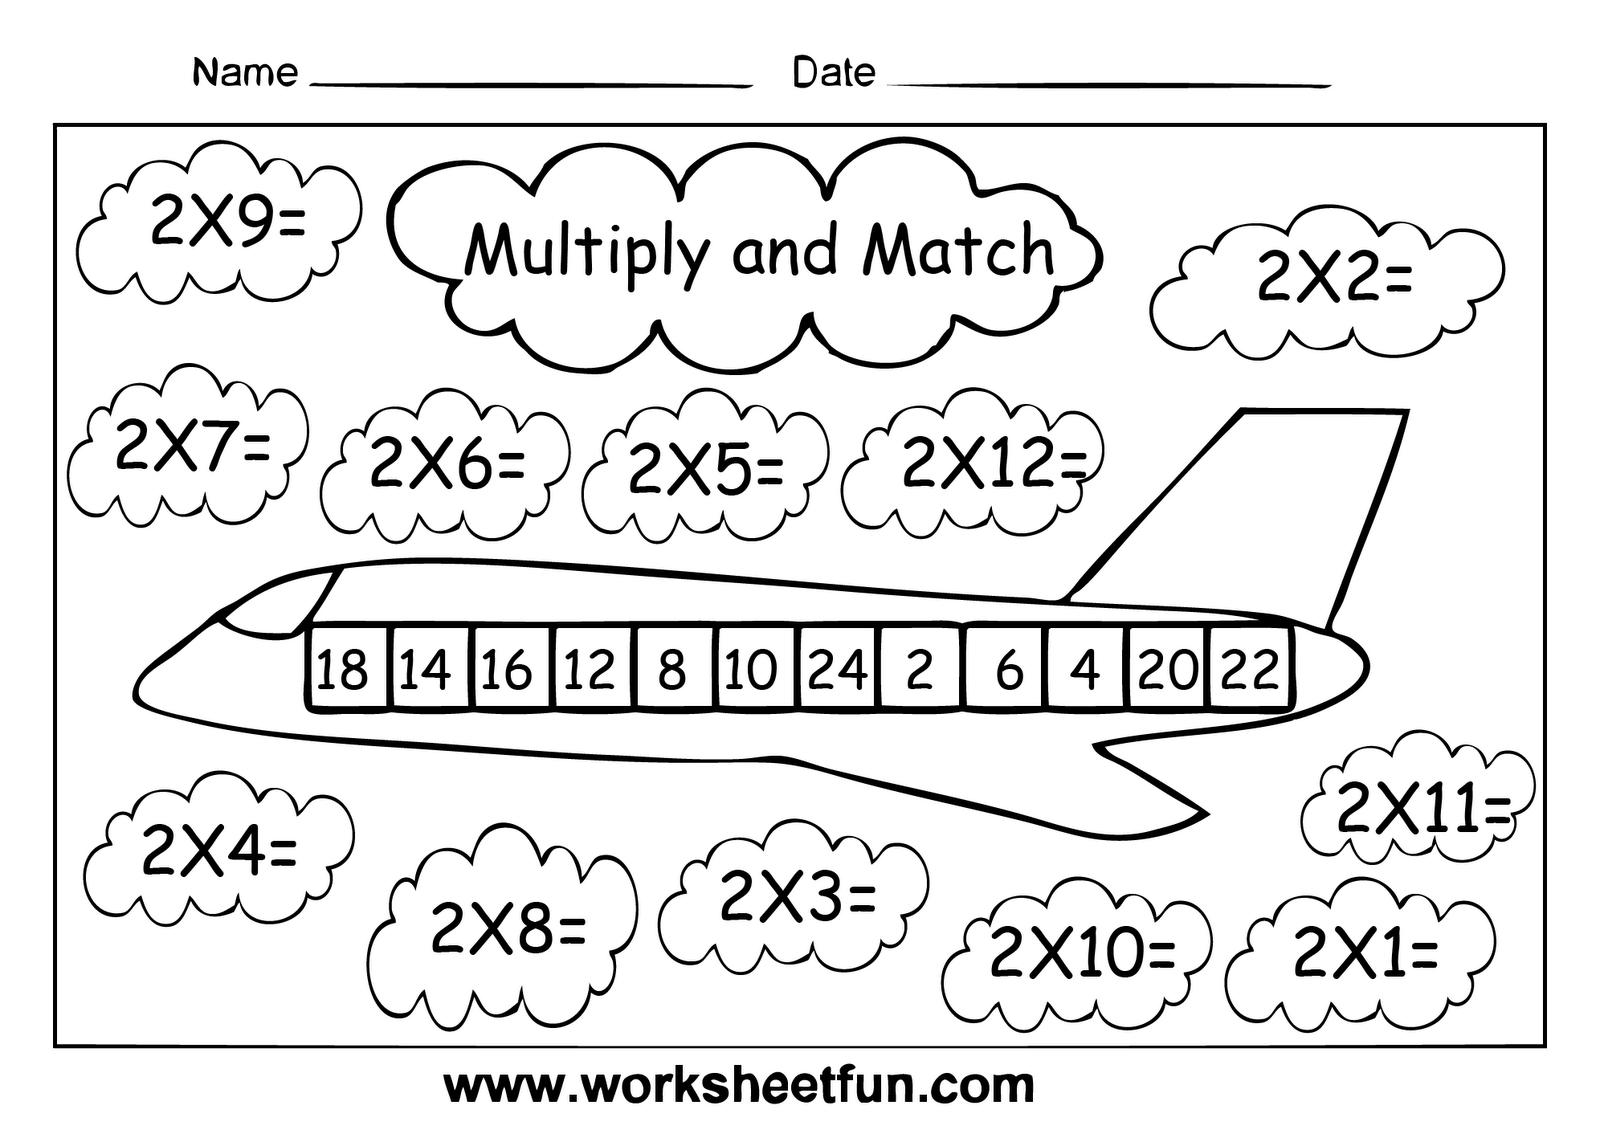 Multiplication Worksheets To Print For Free